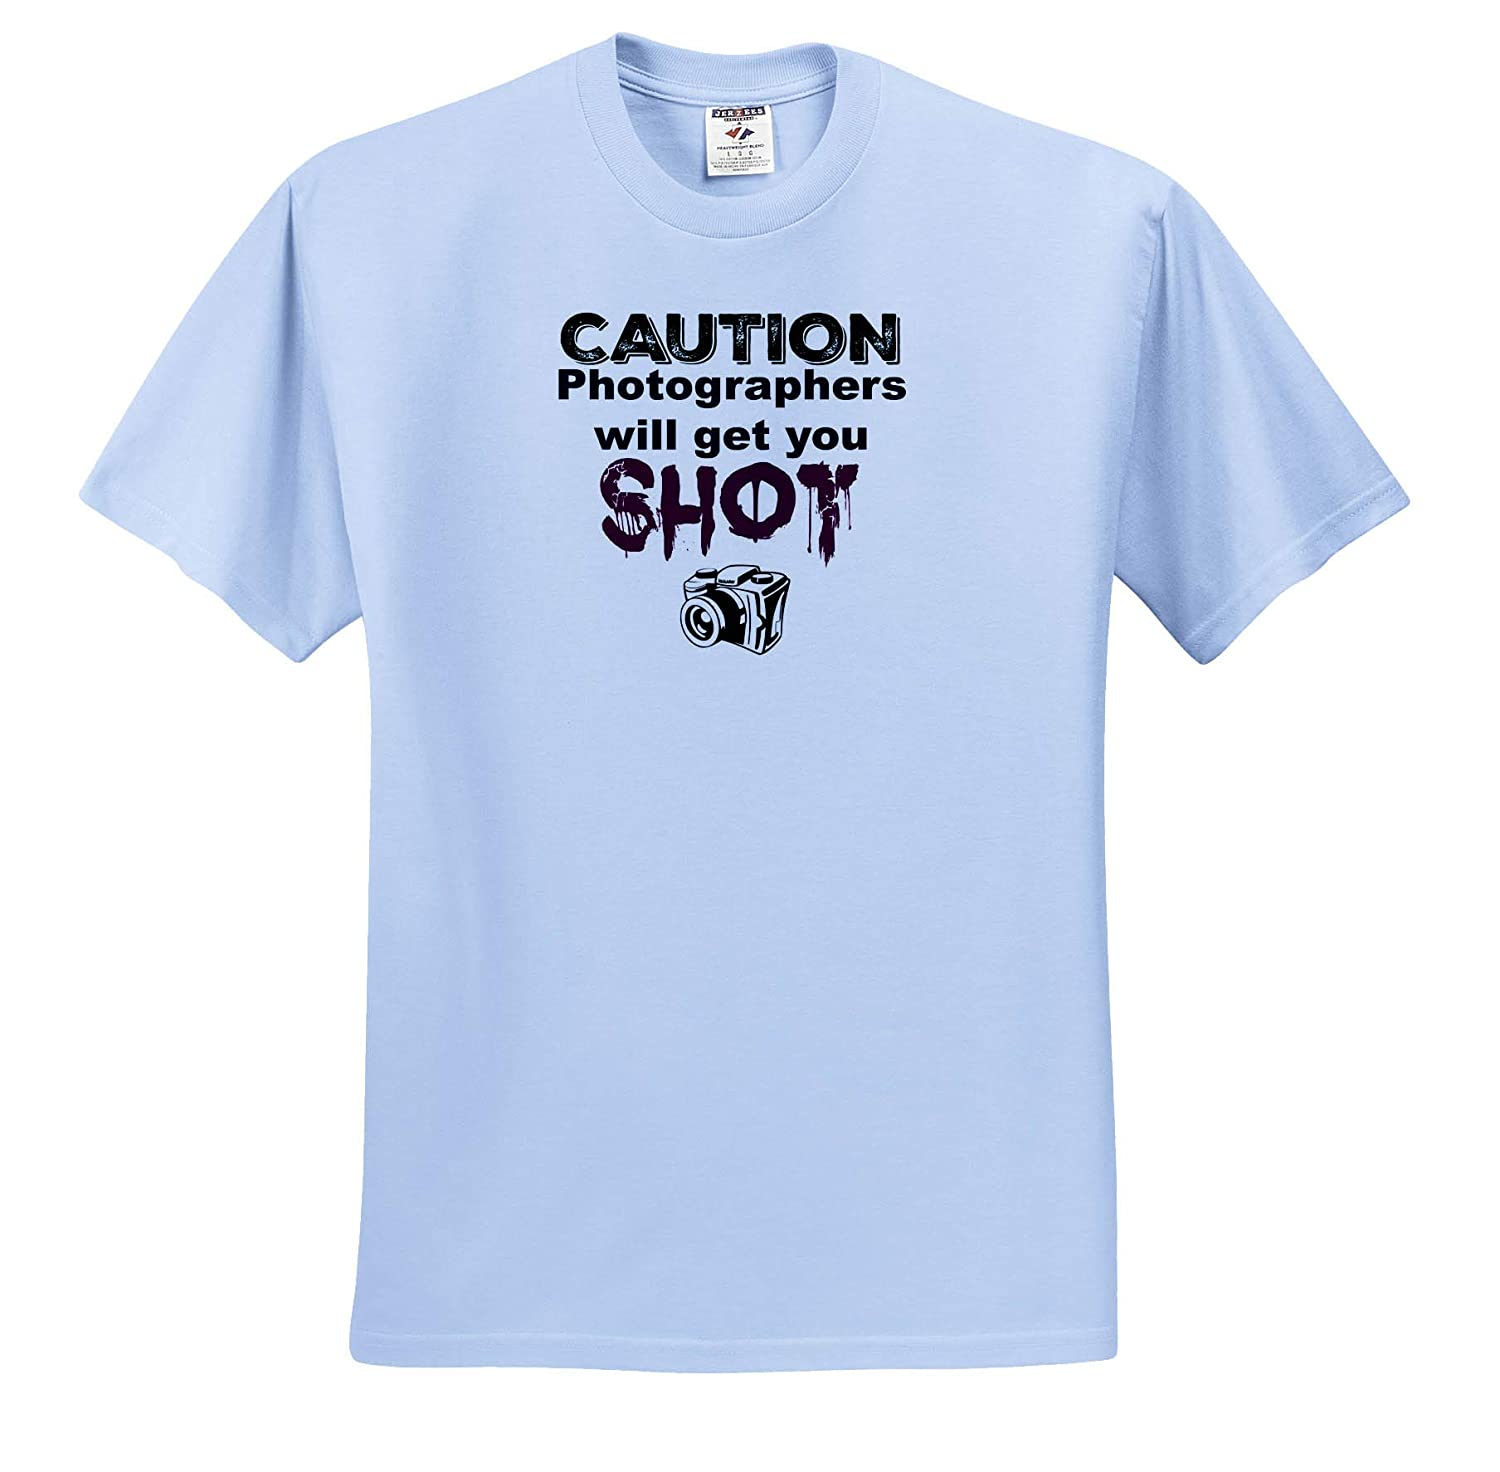 T-Shirts Image of Caution Photographers Will Get You Shot 3dRose Carrie Merchant Quote